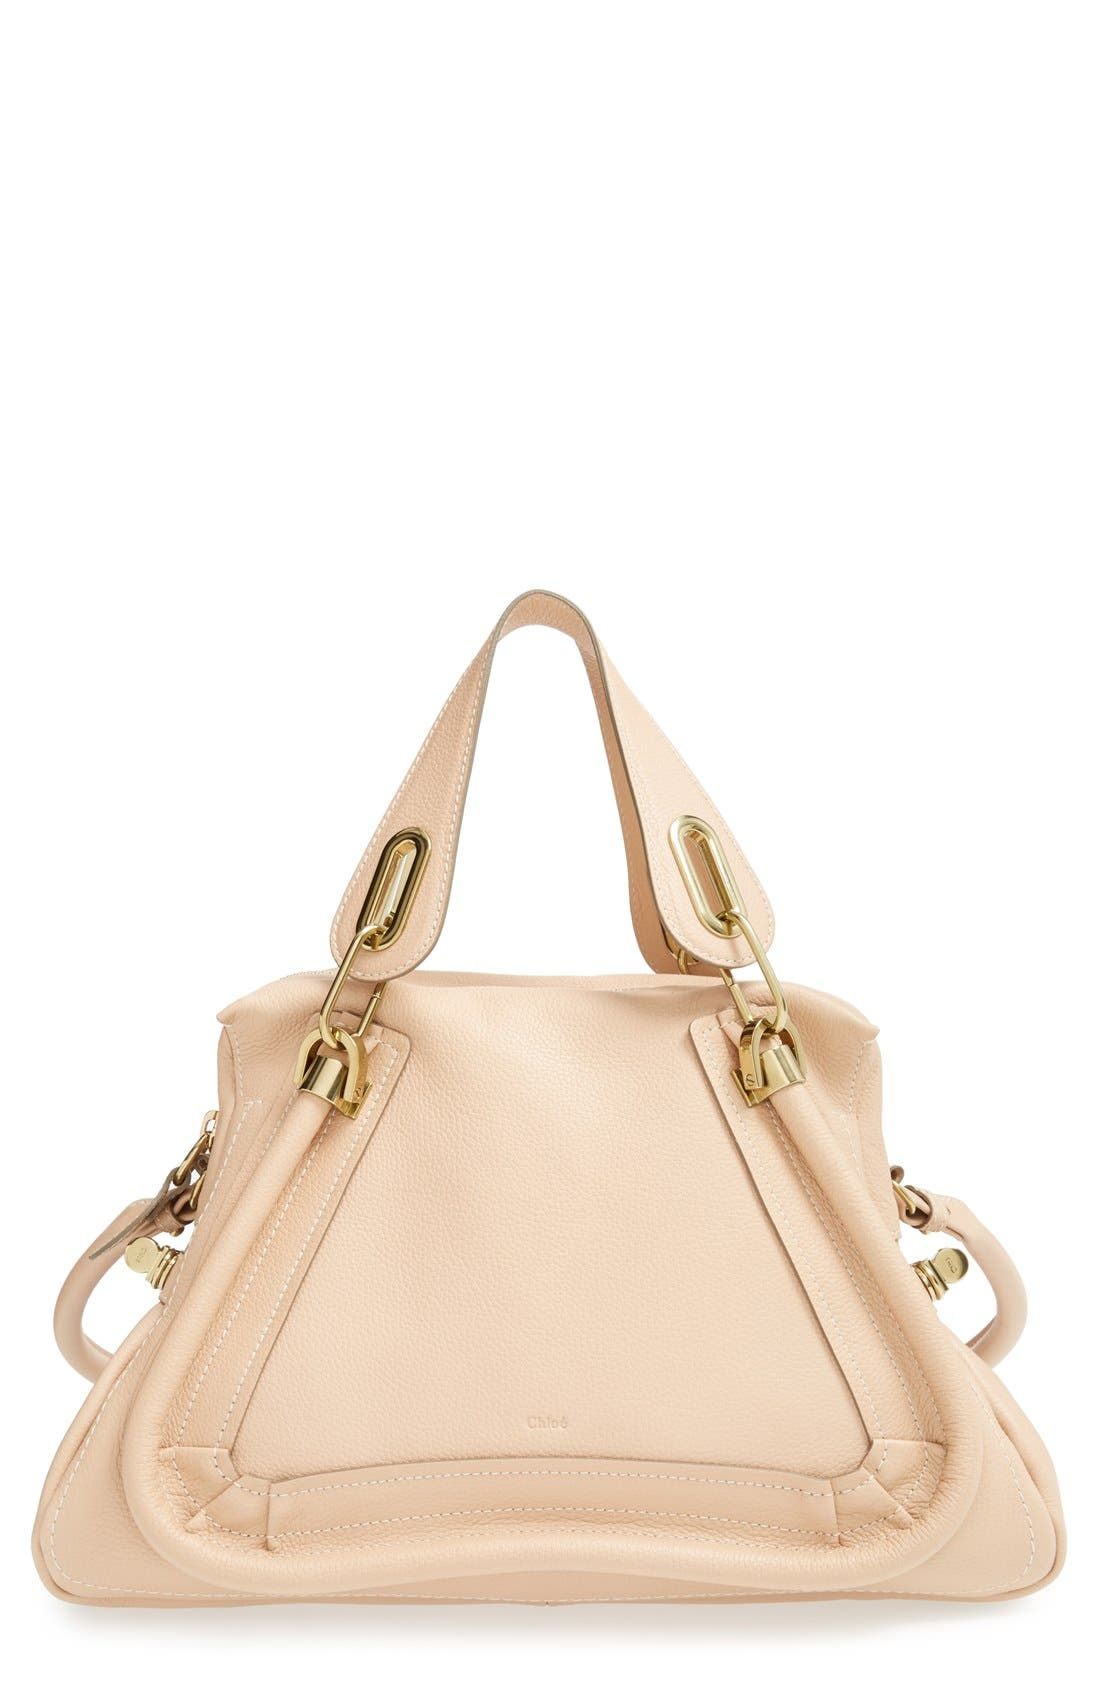 Alternate Image 1 Selected - Chloé 'Paraty - Medium' Leather Satchel